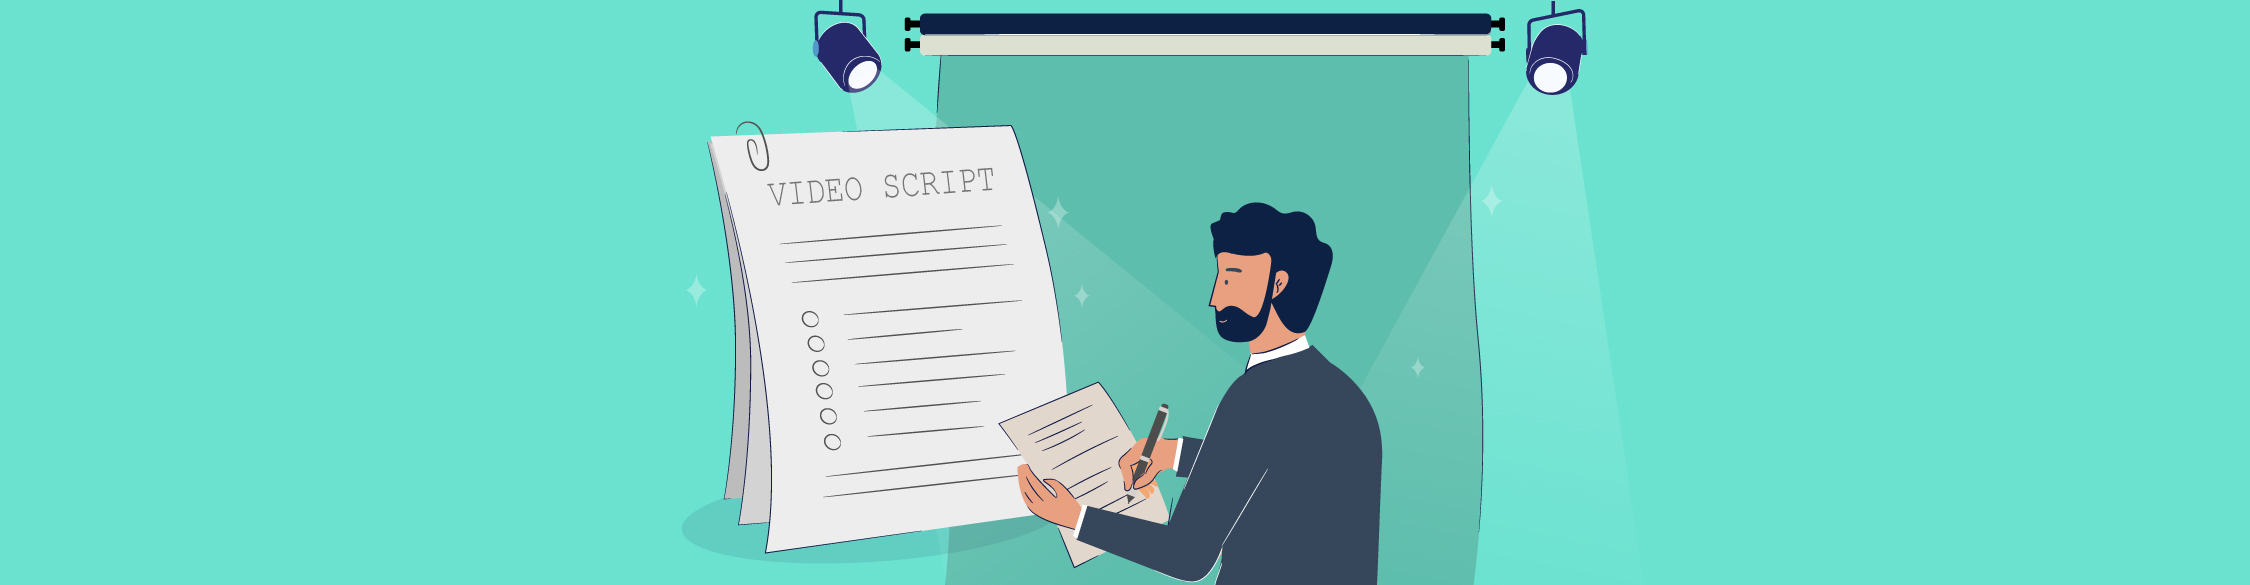 How to Write a Video Script That Keeps Viewers Watching